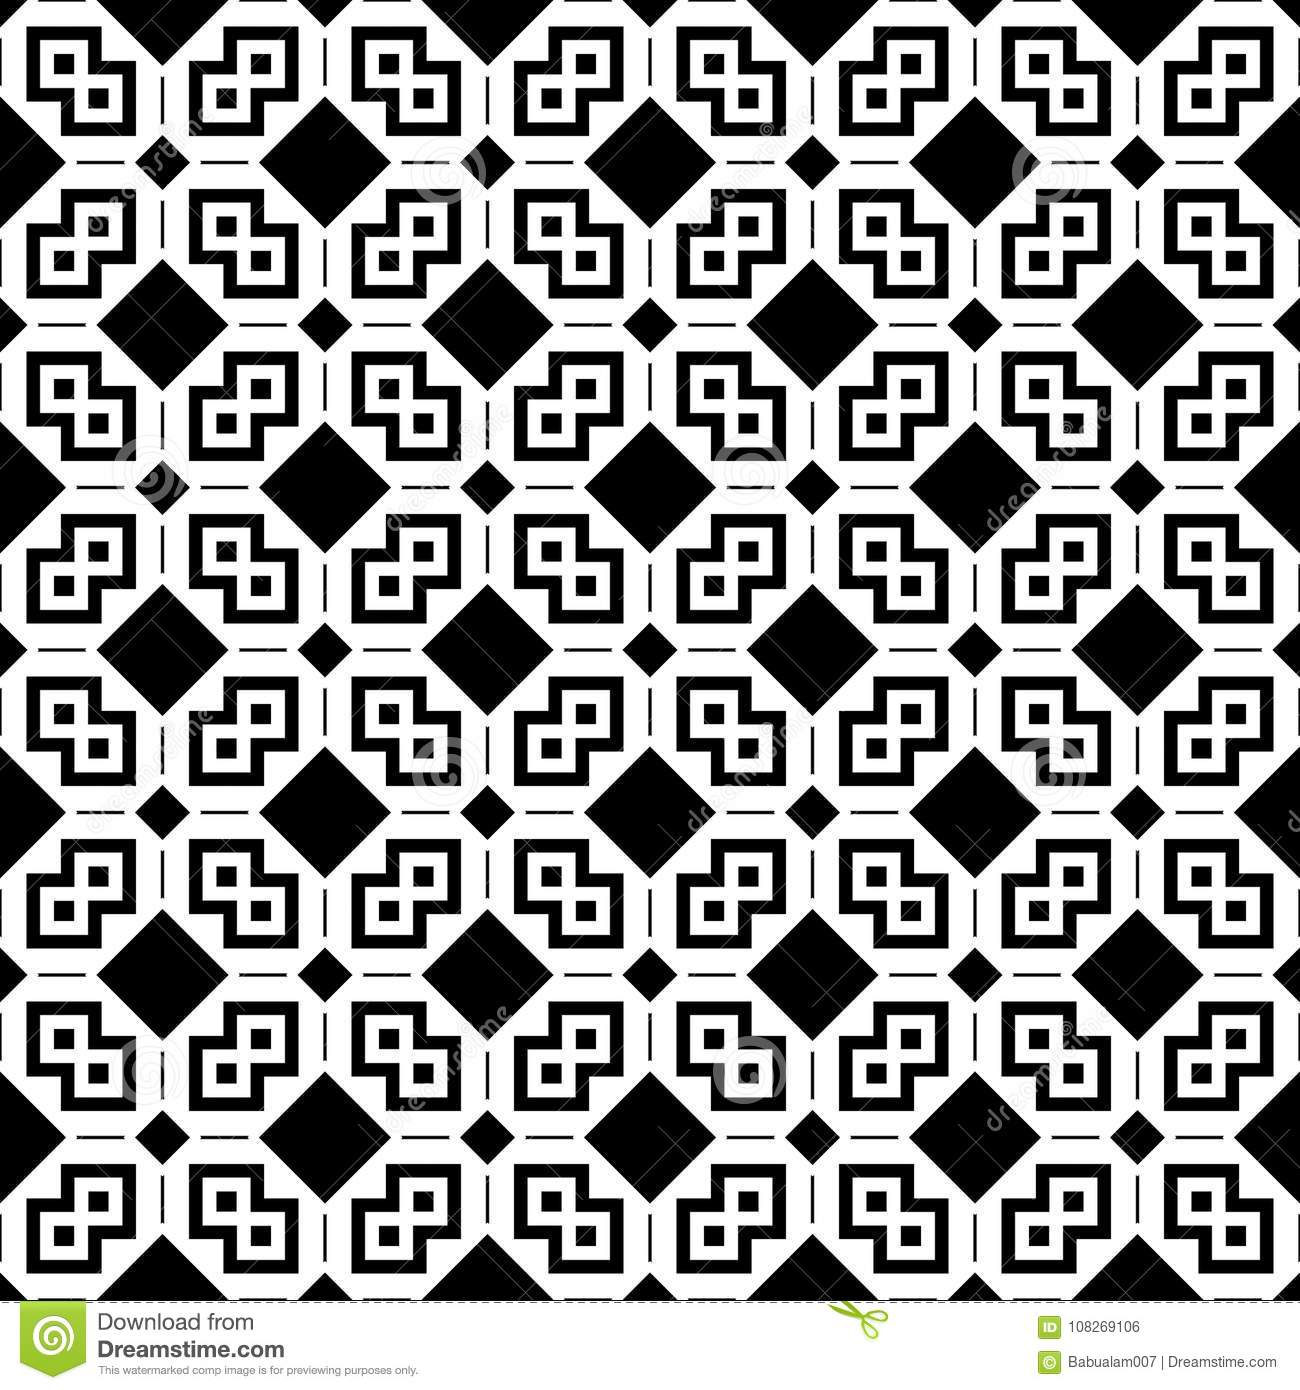 Simple Wallpaper Home Screen Black And White - background-wallpaper-screen-sever-book-cover-printing-laser-cutting-designs-vector-black-white-pattern-design-dot-geometric-polka-108269106  Pic_757279.jpg